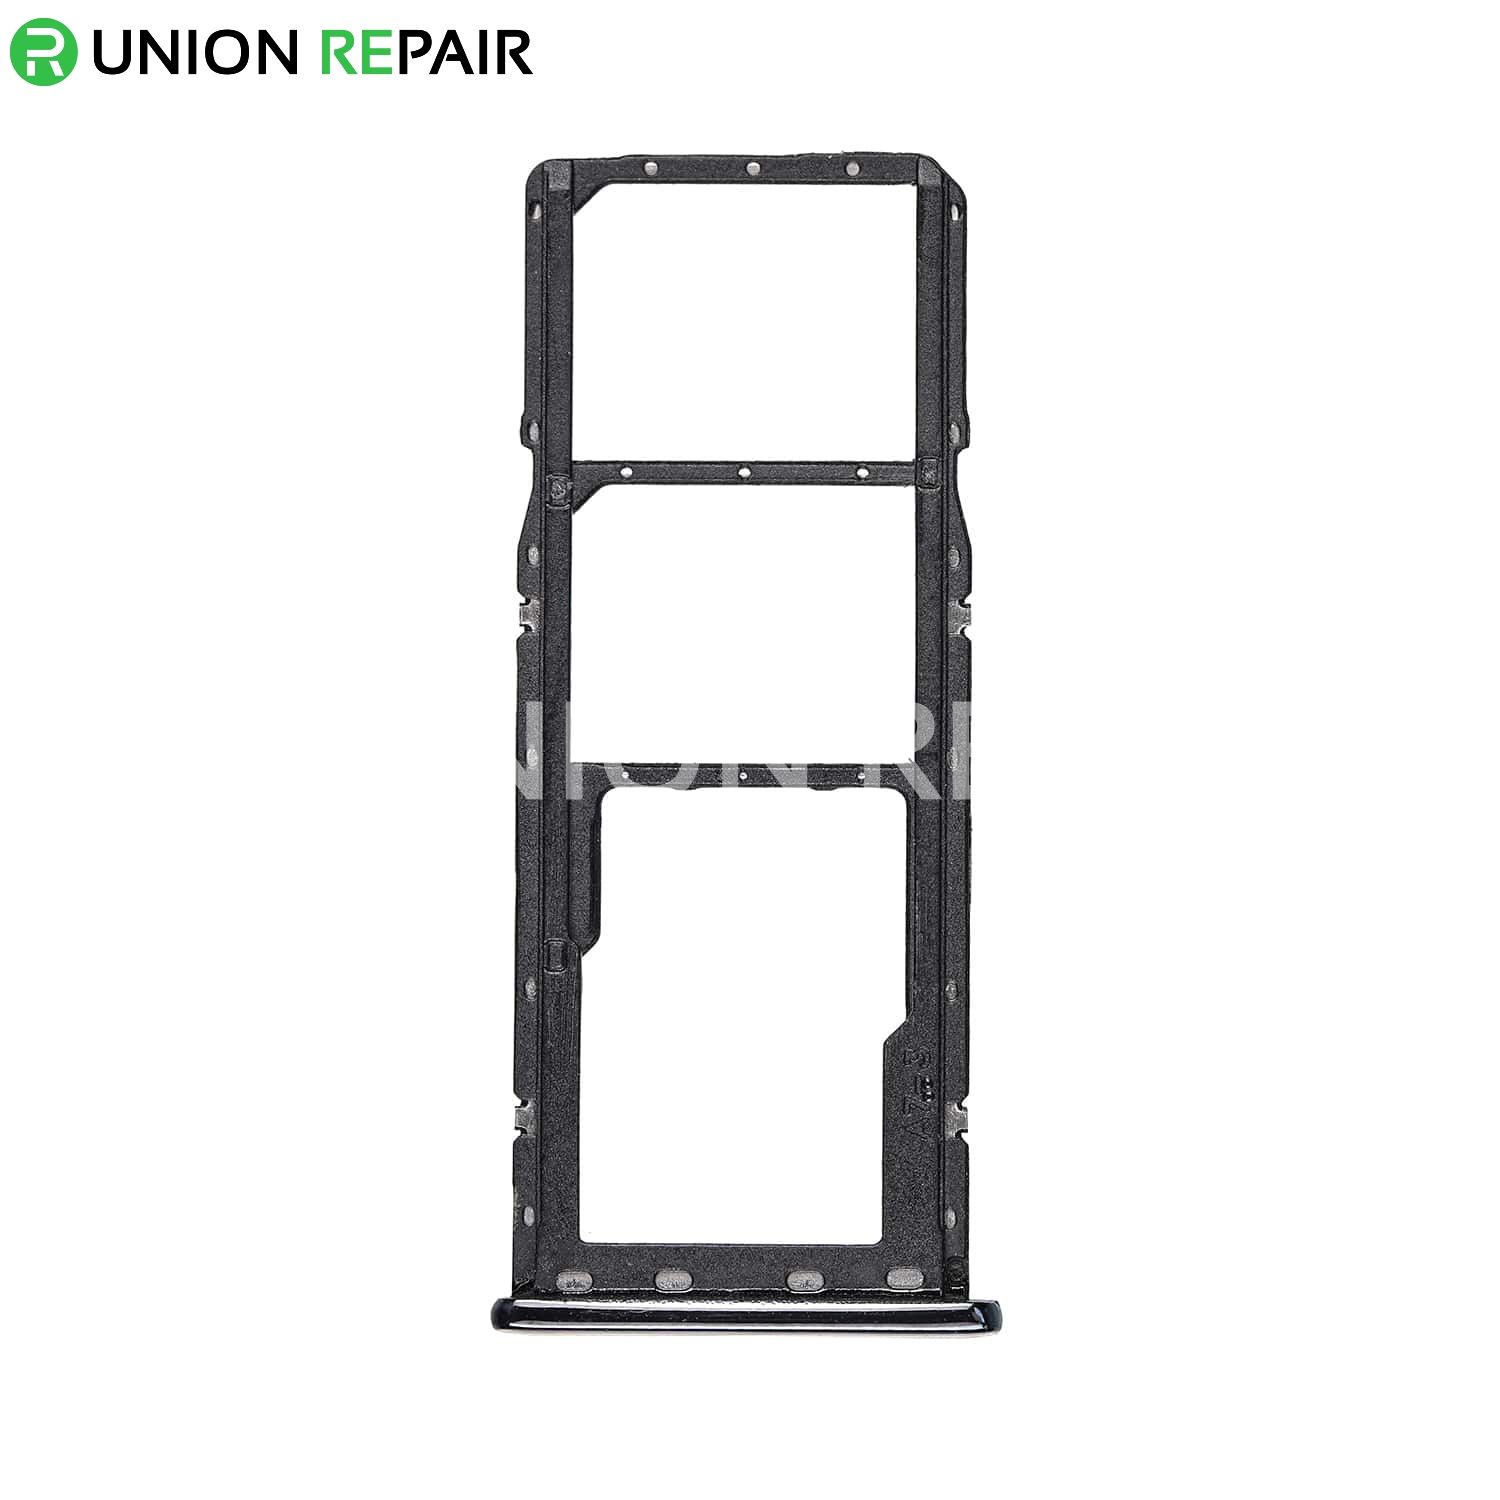 Replacement for Samsung Galaxy A7 (2018) SM-750 SIM Card Tray - Black